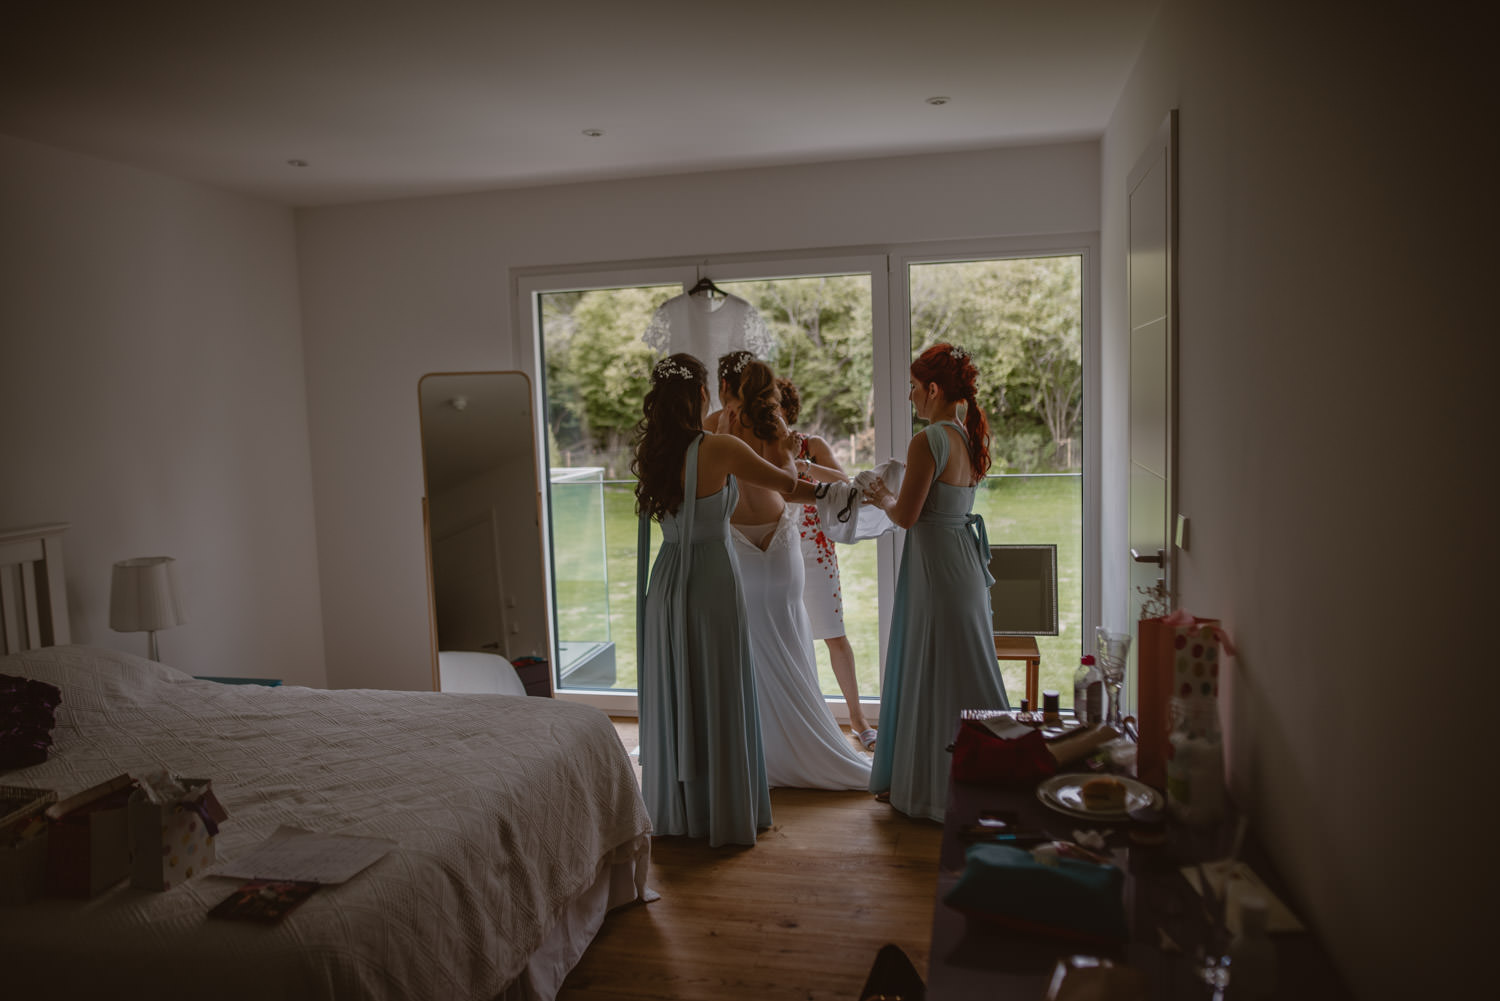 bridesmaids helping the bride with the wedding dress